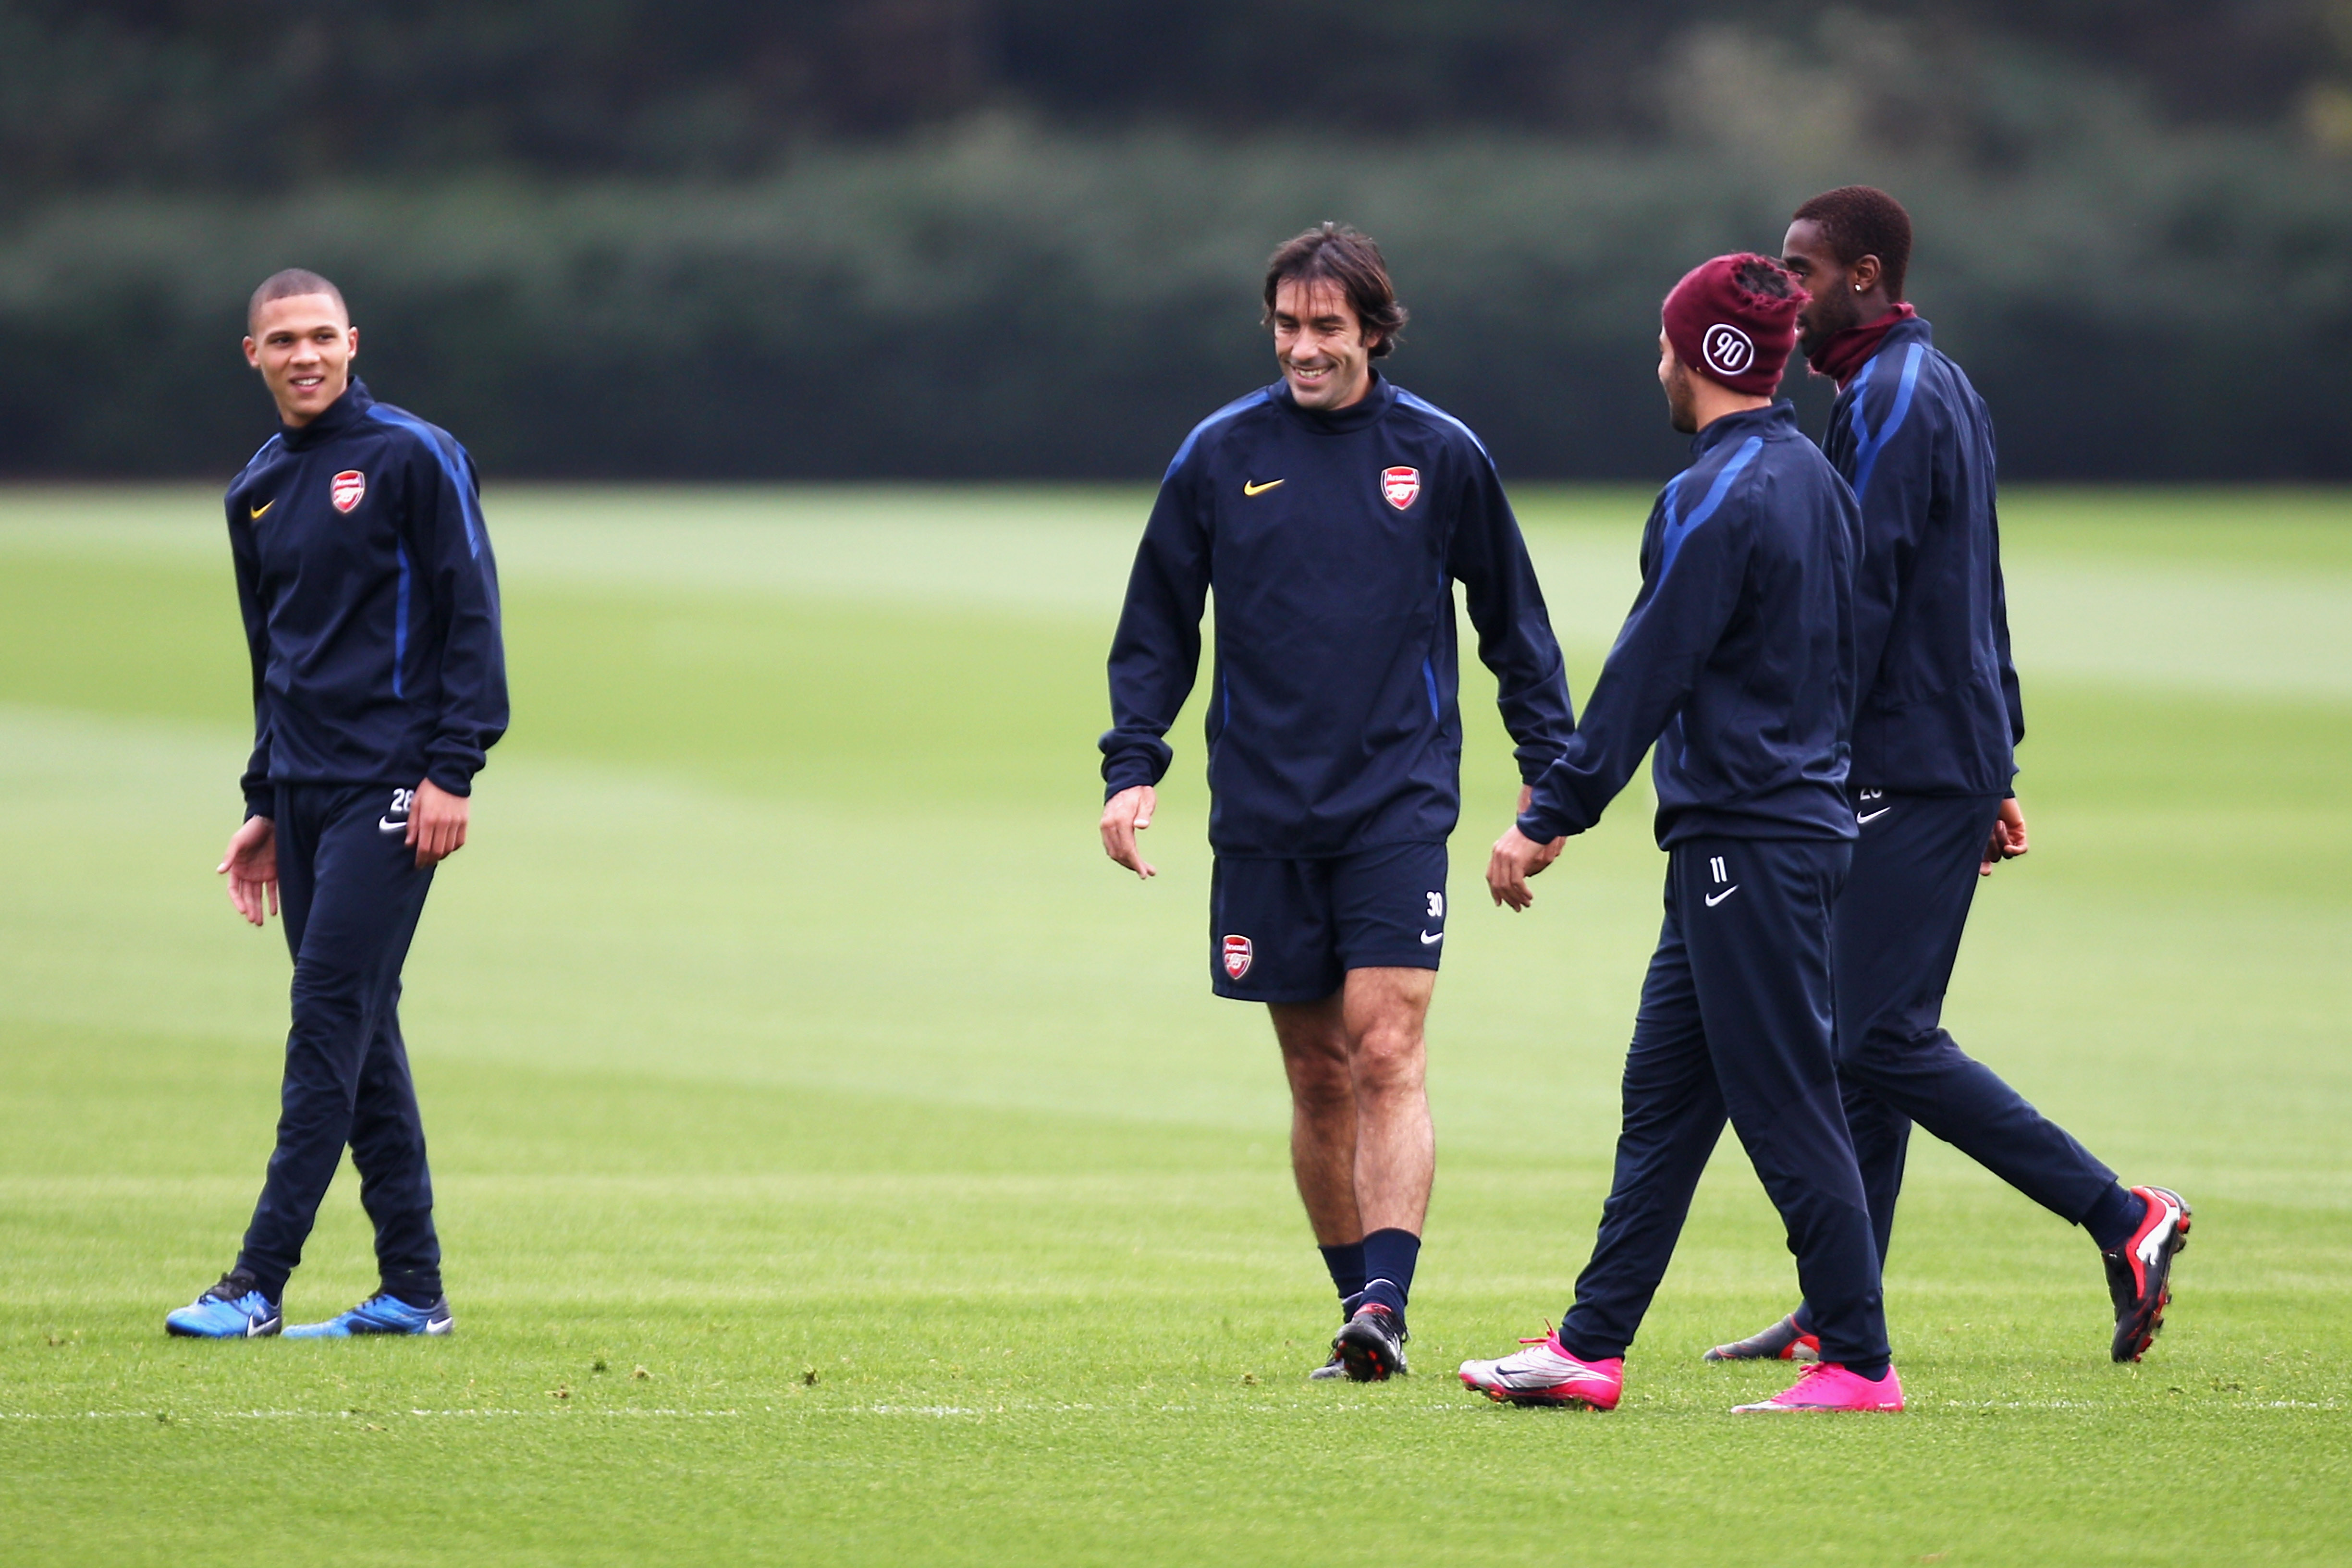 ST ALBANS, ENGLAND - OCTOBER 18:  Former Arsenal player Robert Pires (C) shares a joke with players during a training session ahead of the UEFA Champions League game against Shakhtar Donetsk at the club's complex at London Colney on October 18, 2010 in St